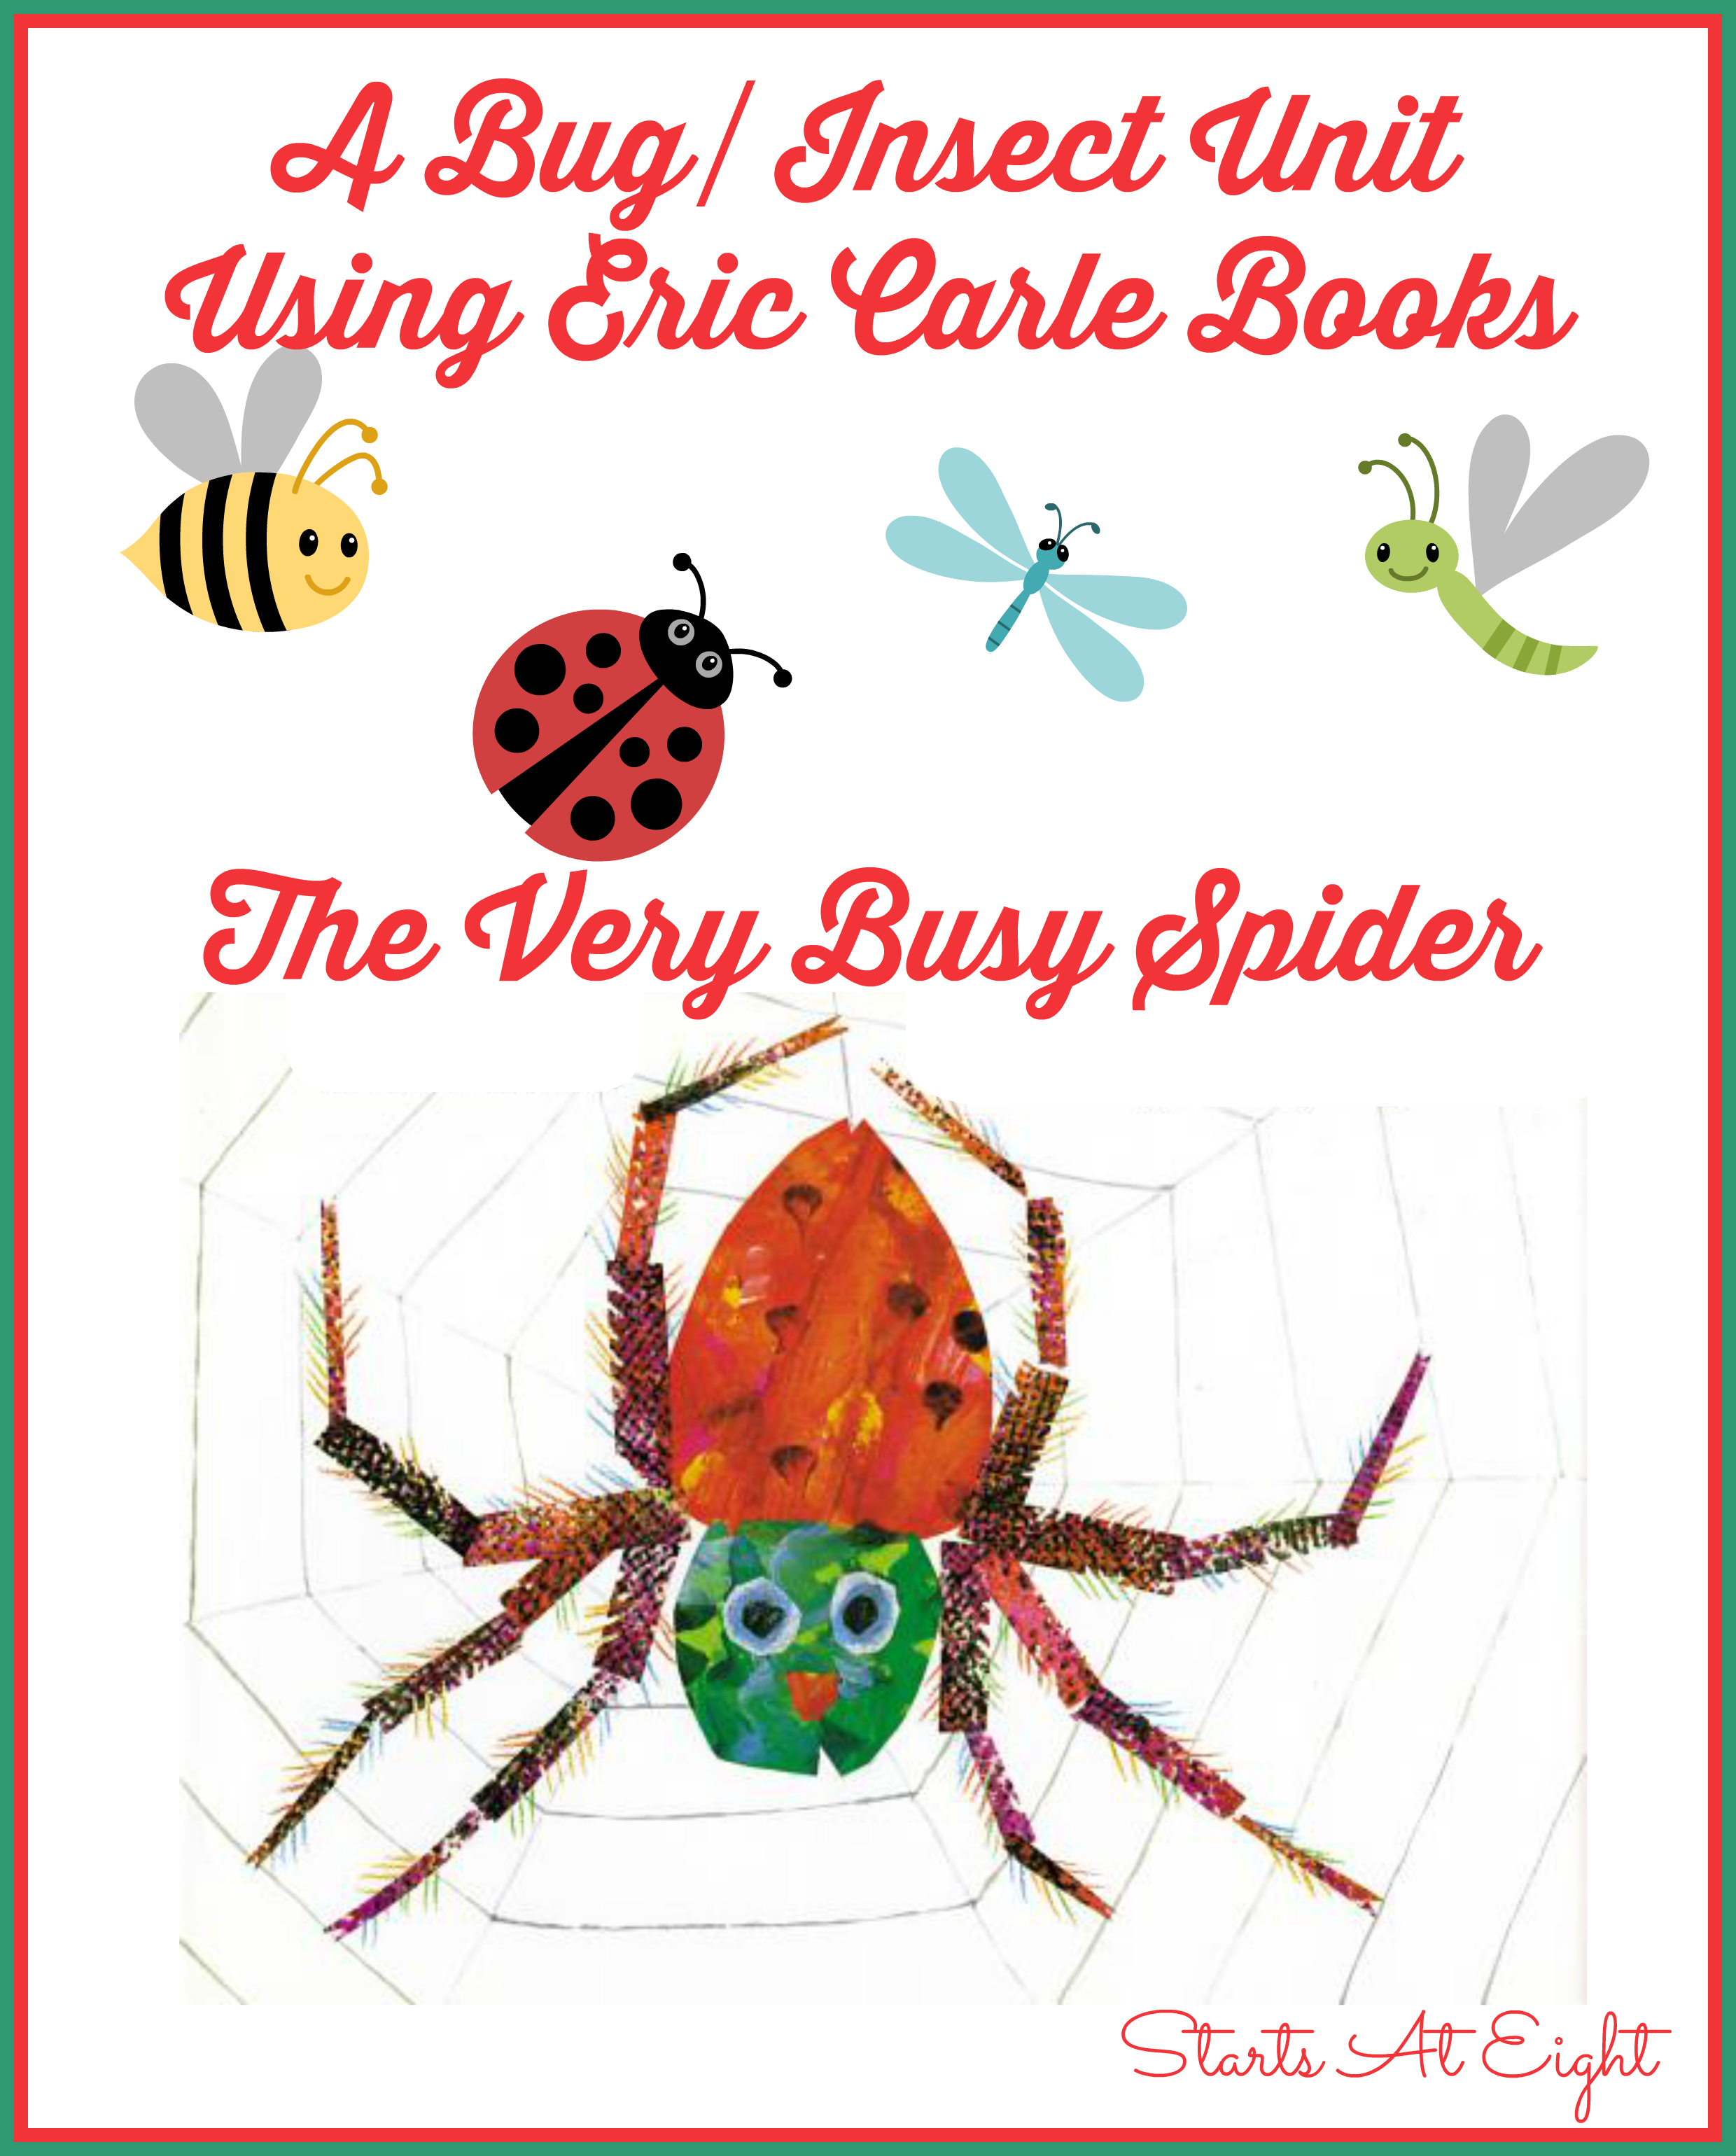 A Bug Insect Unit Using Eric Carle Books The Very Busy